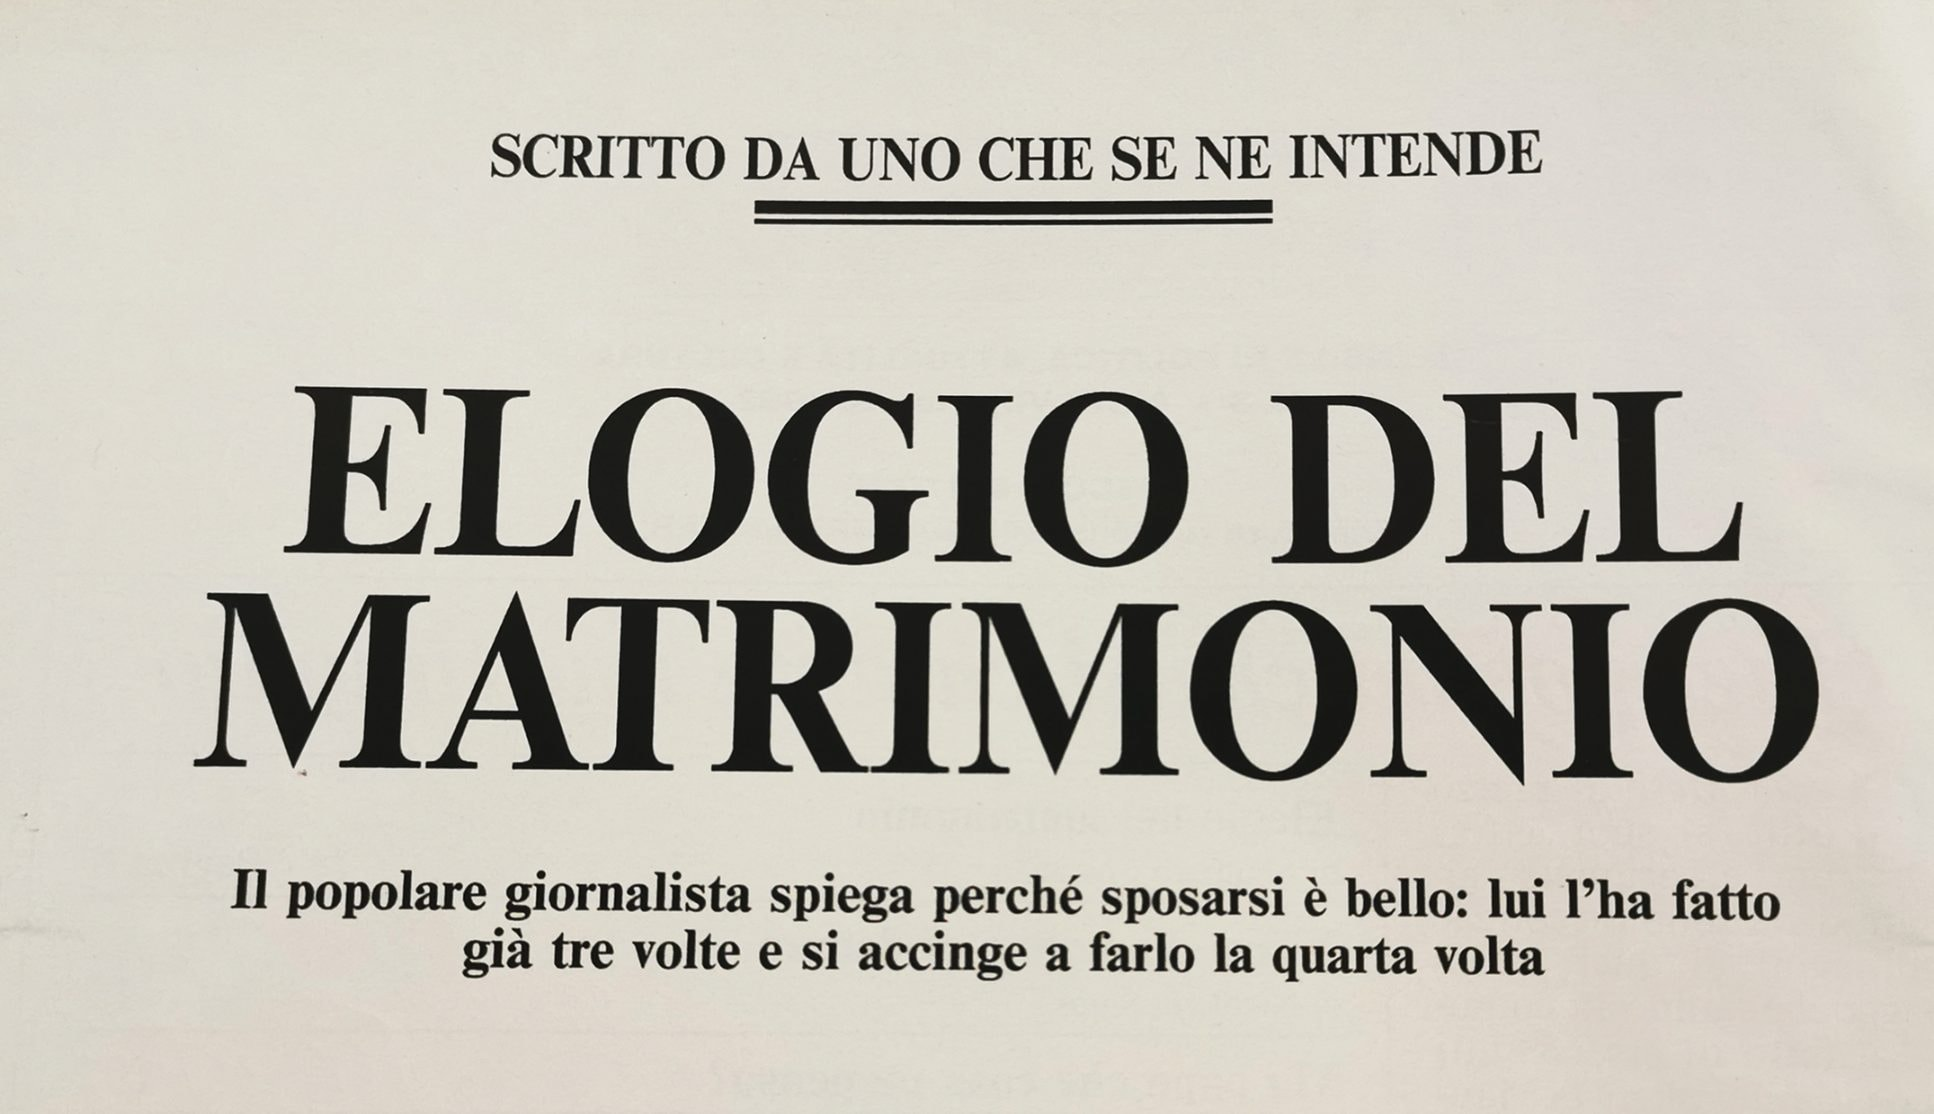 Editorial was signed by Maurizio Costanzo for Gente Mese in March 1992